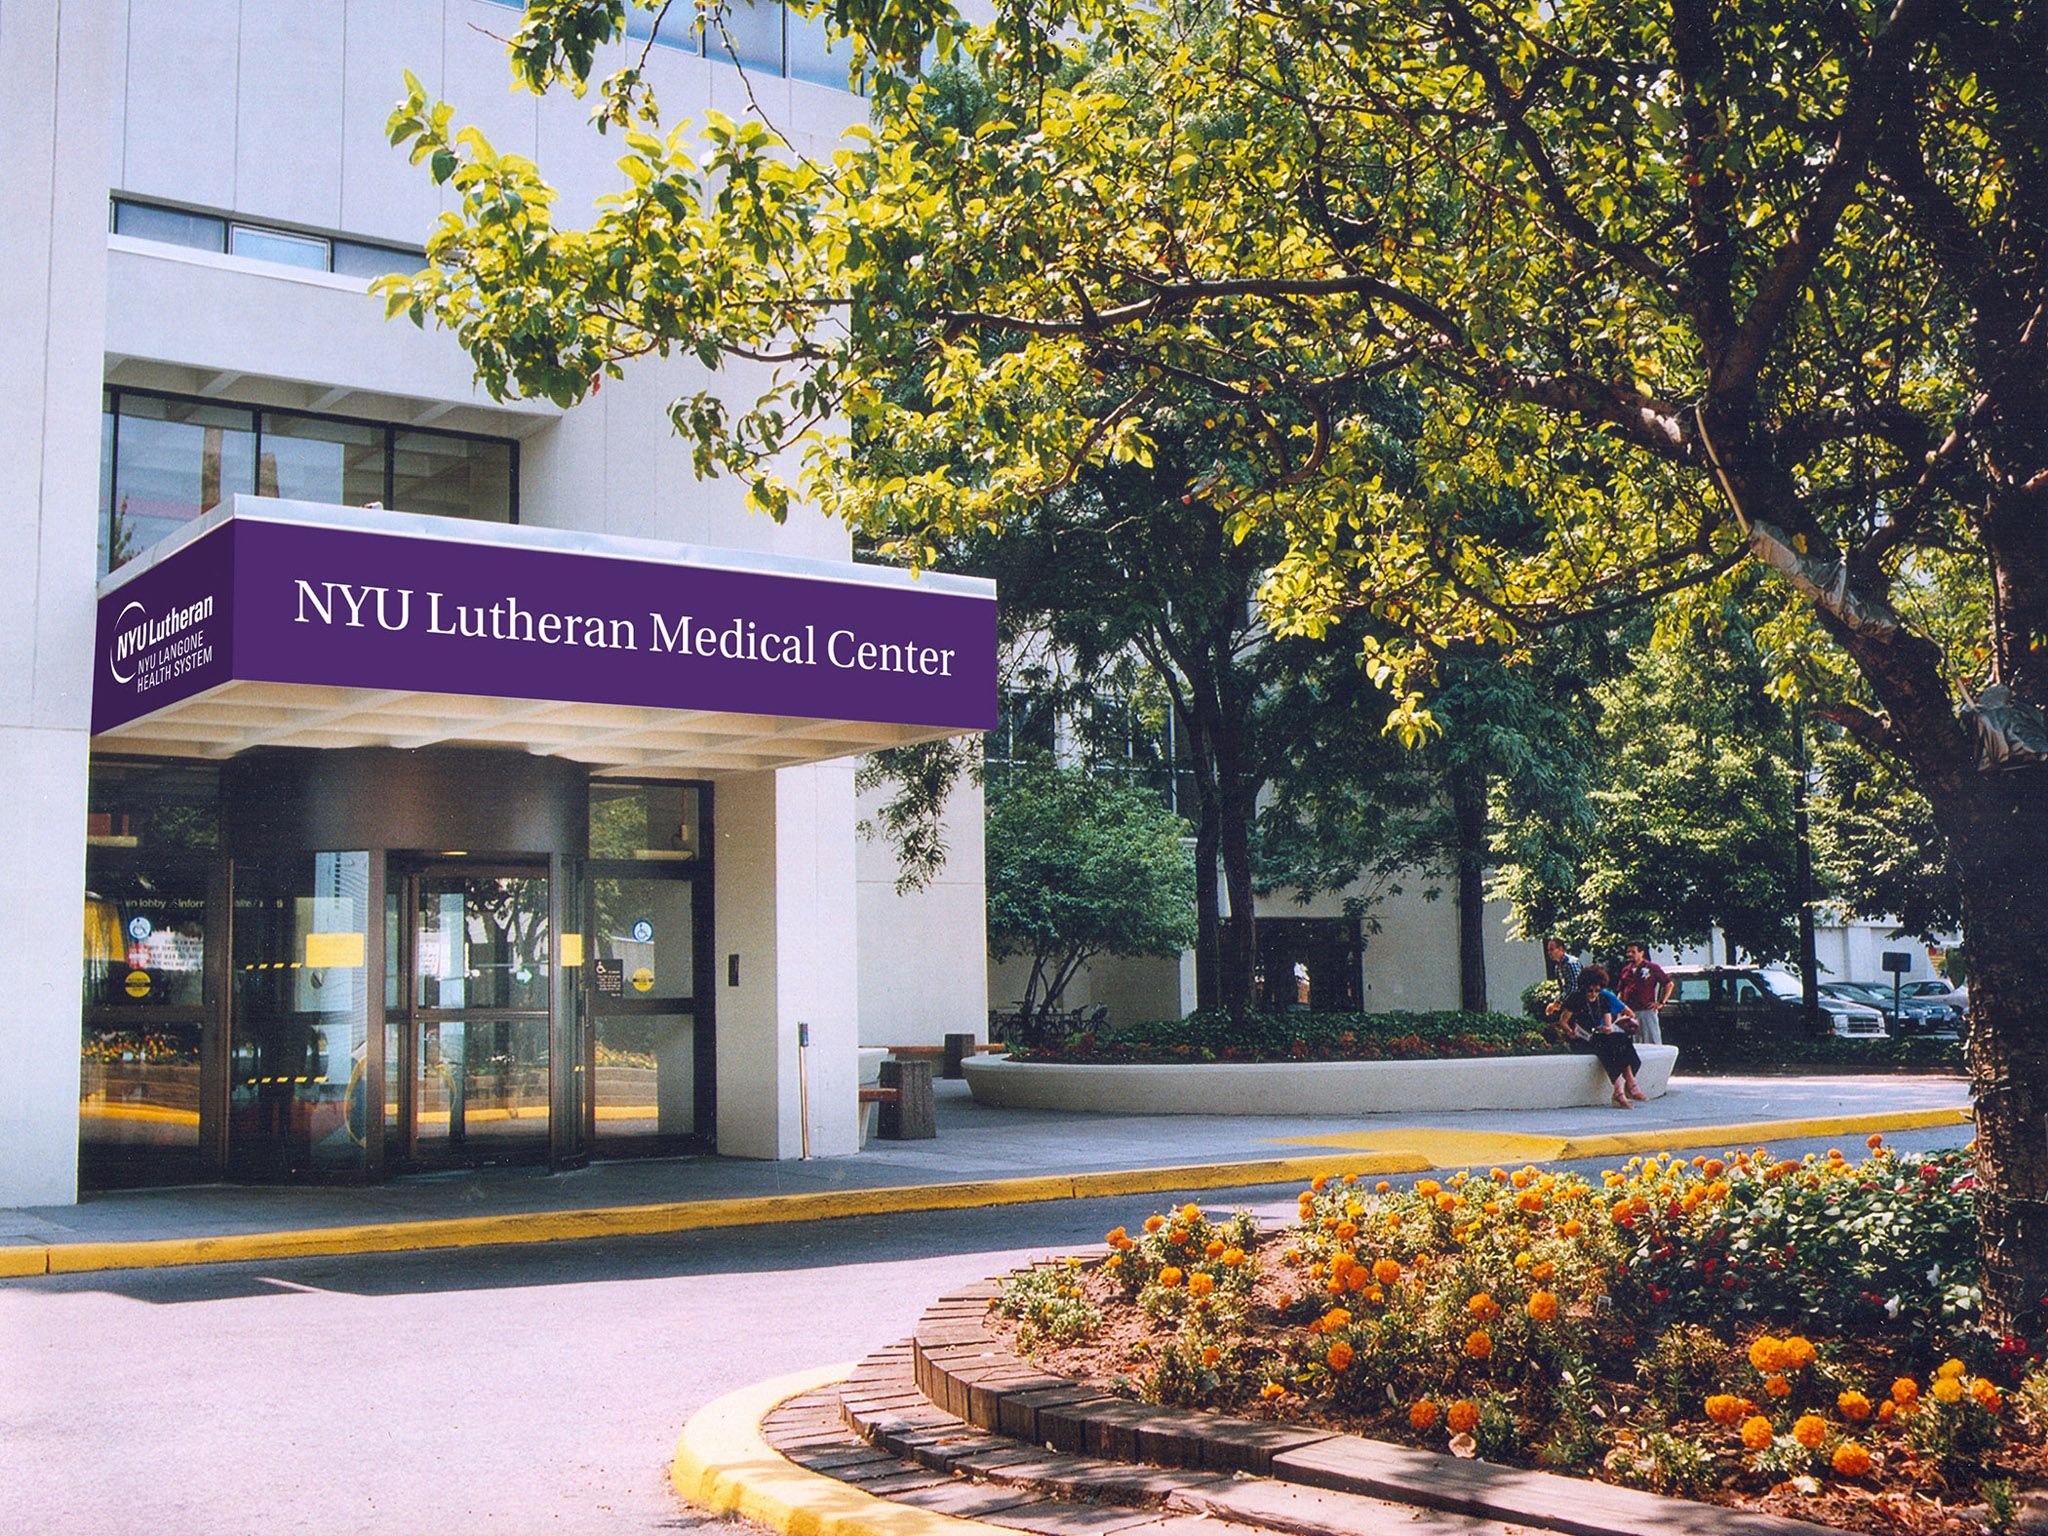 NYU Lutheran Medical Center.jpg